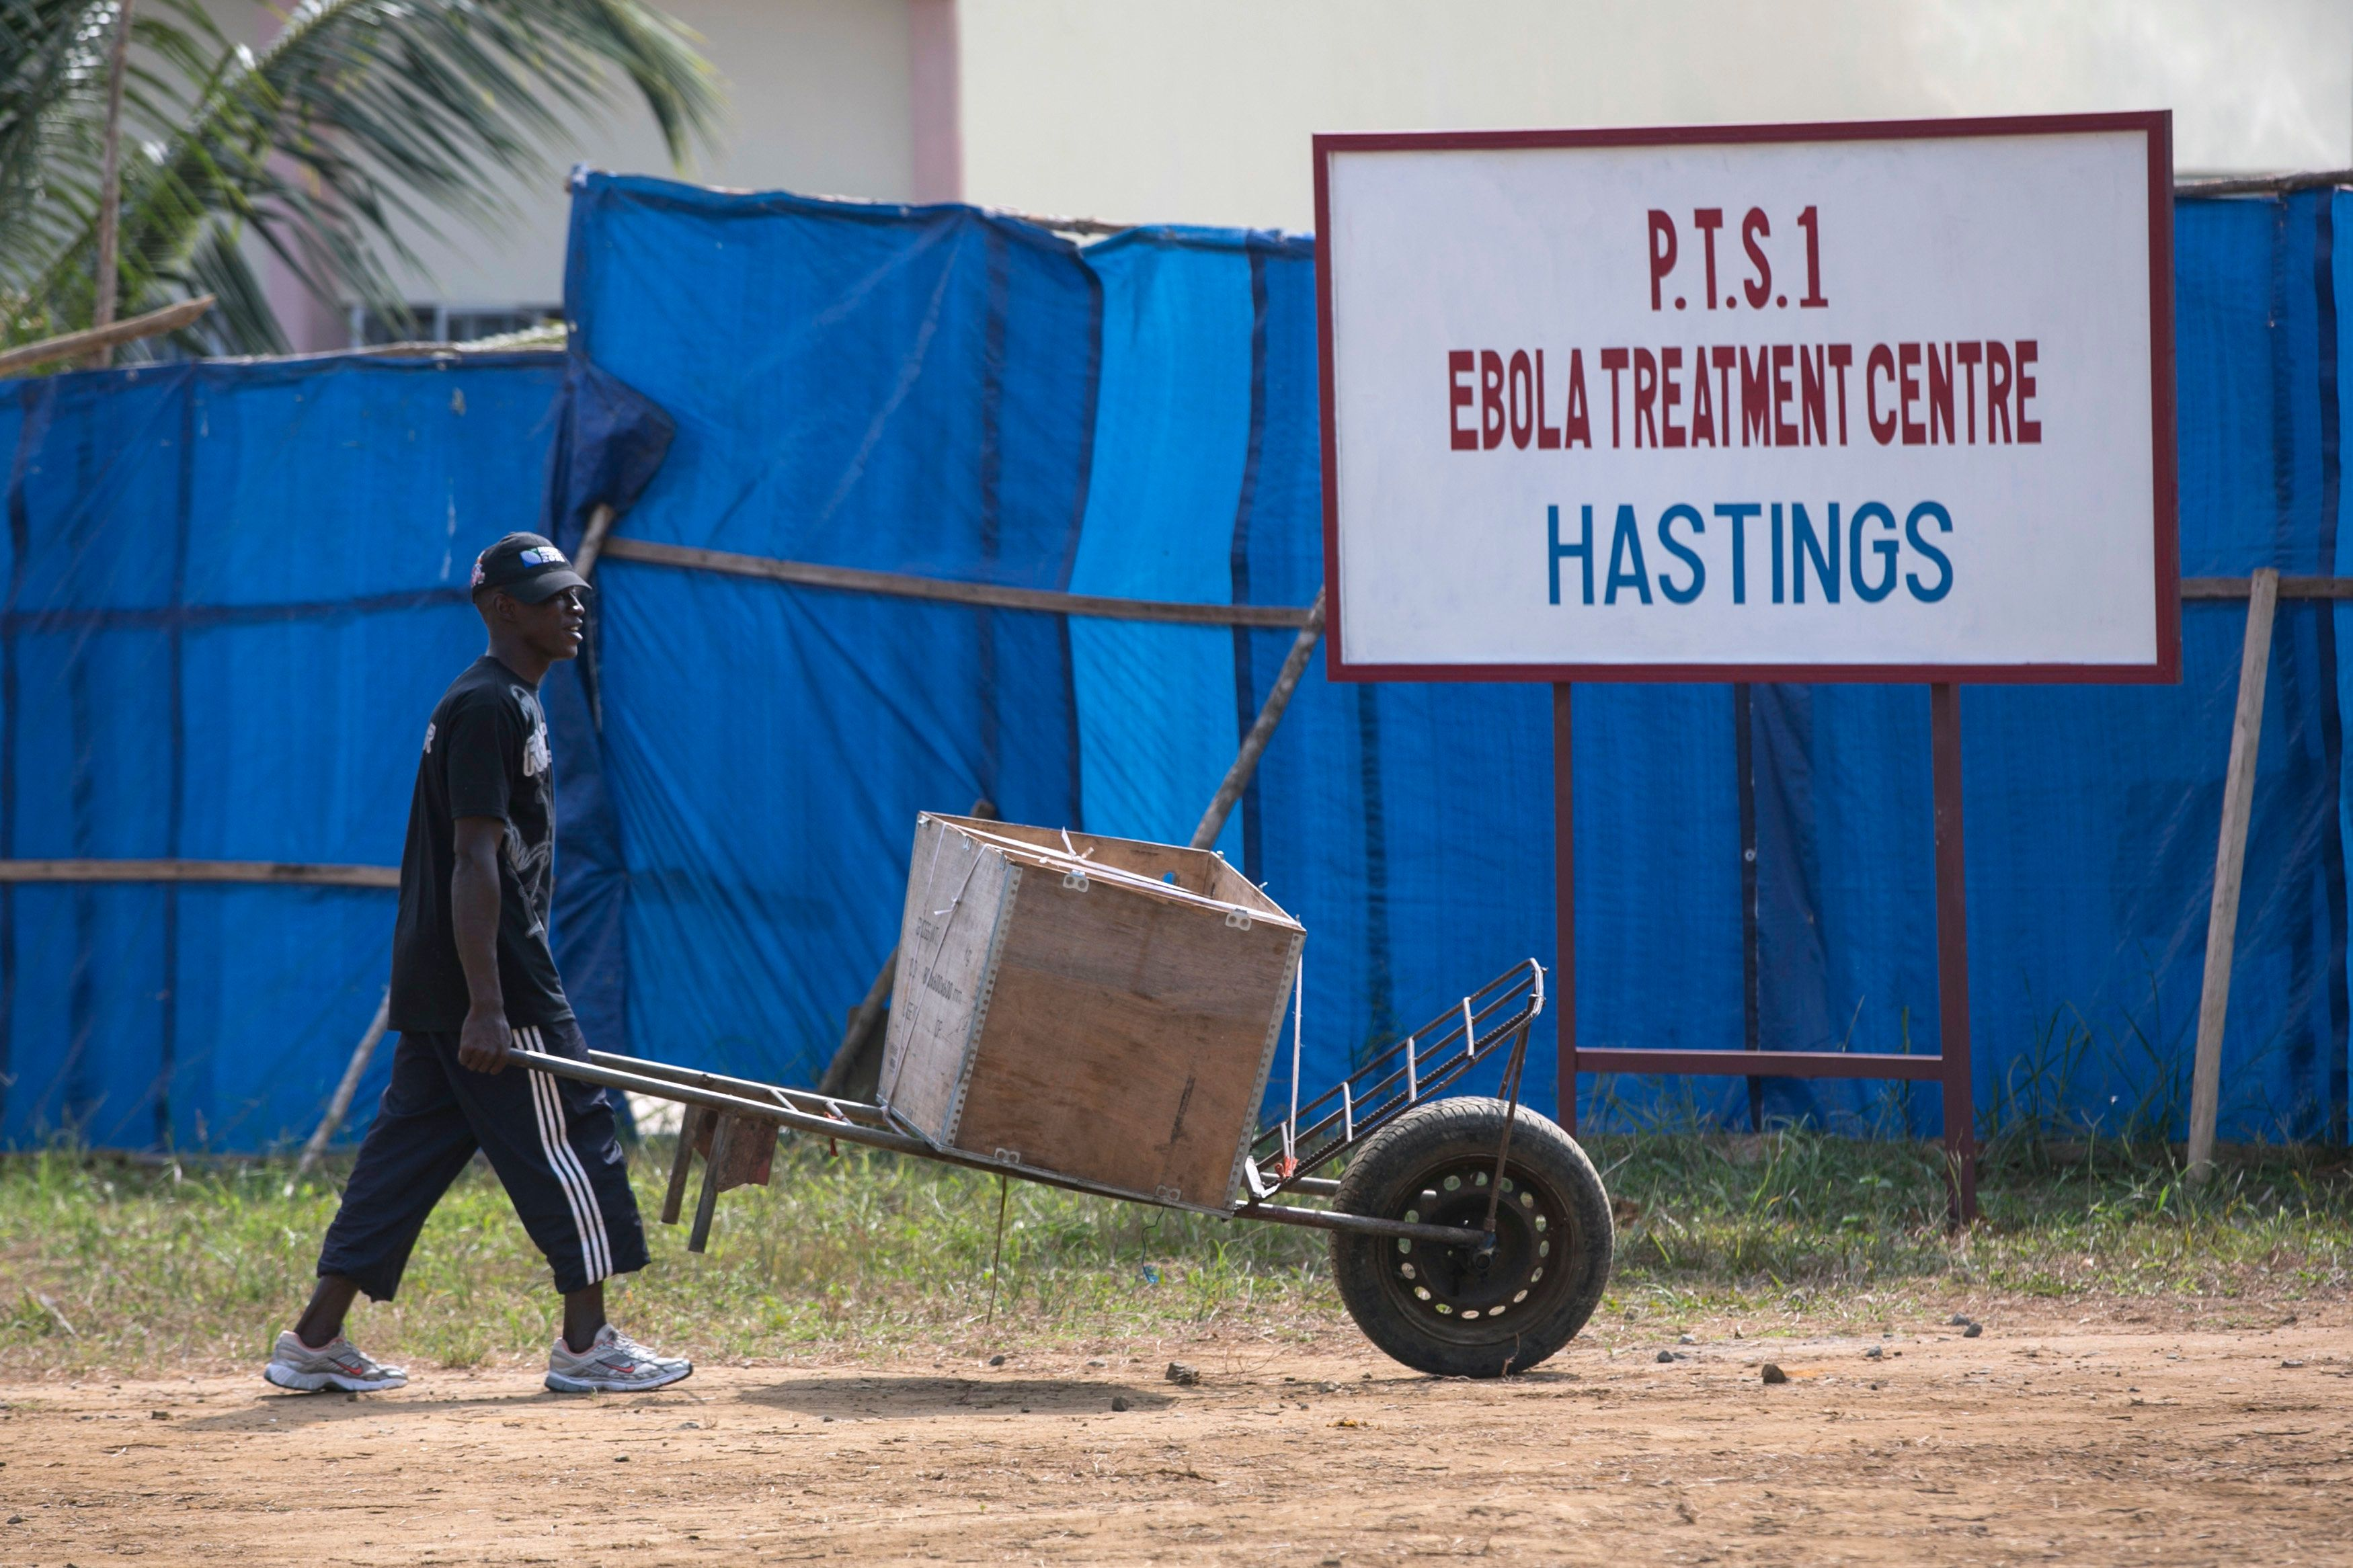 An Ebola outbreak during 2014 killed more than 11,000 people in west